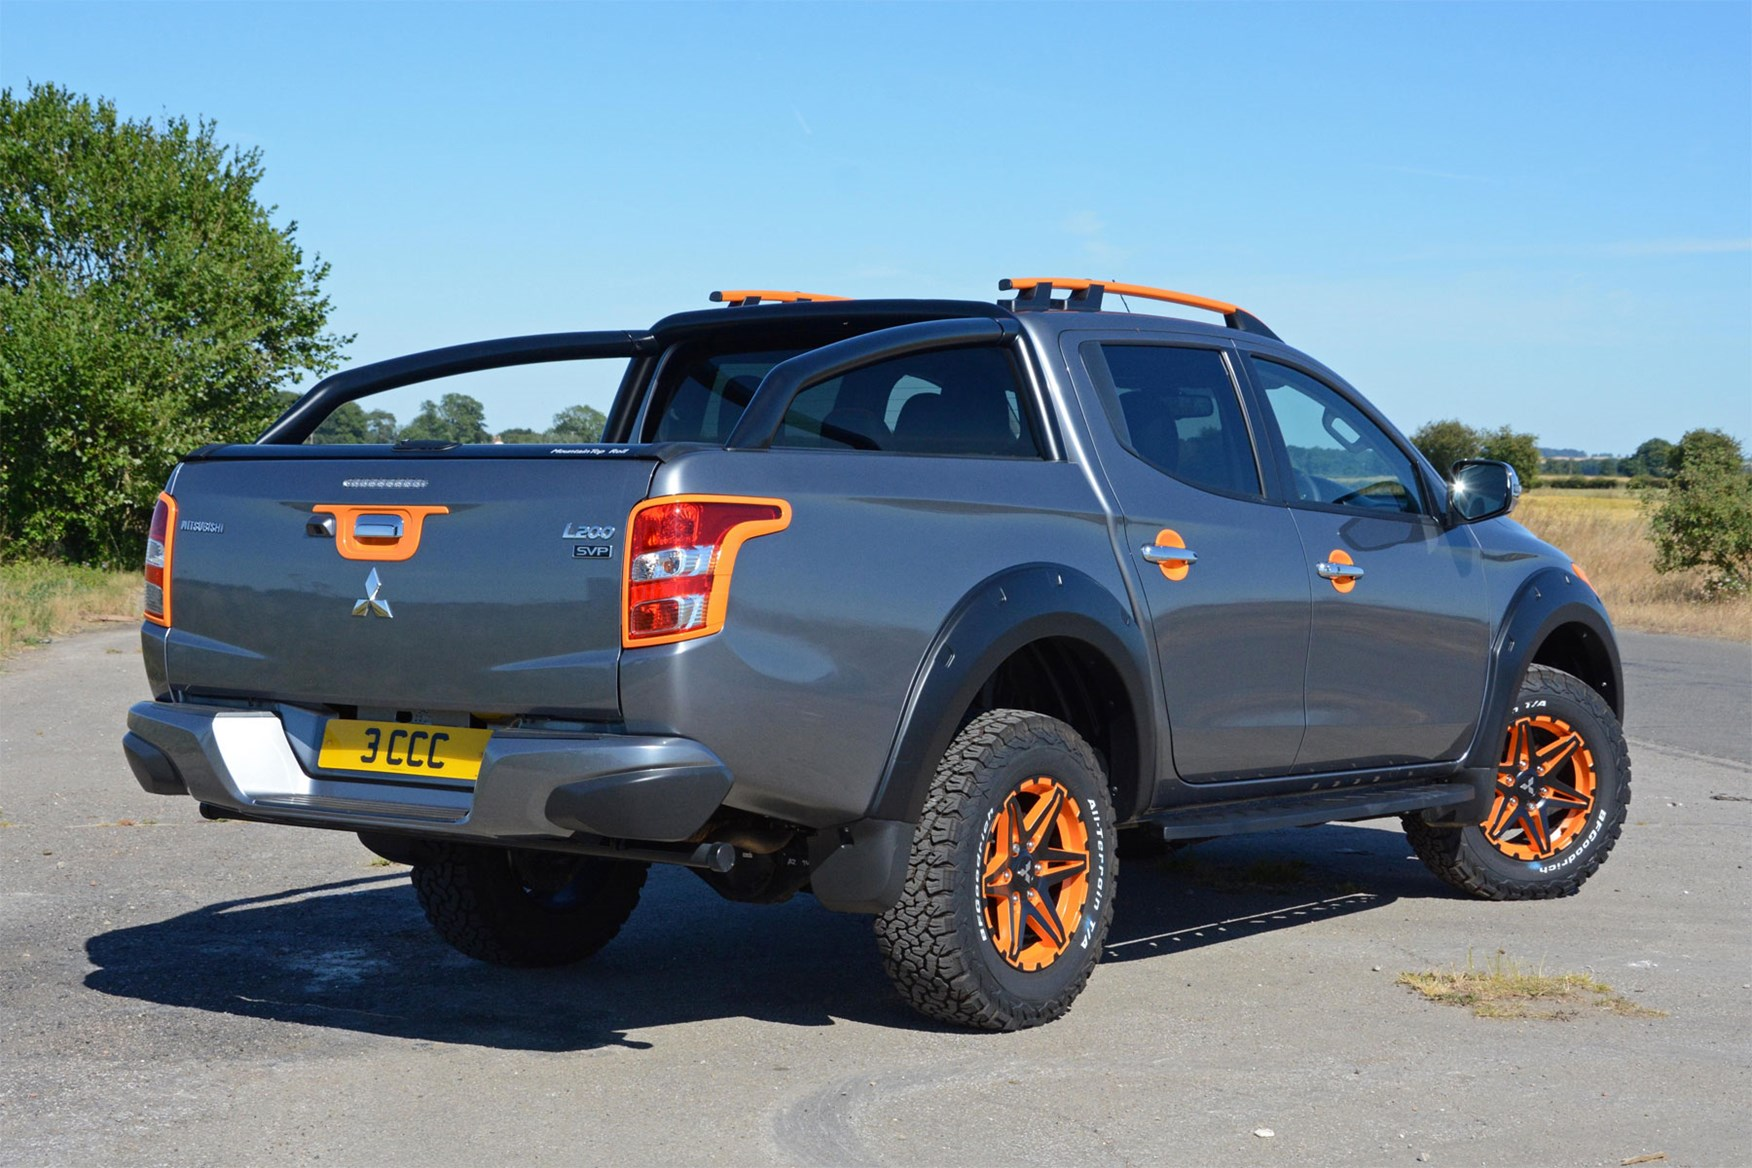 Mitsubishi L200 Barbarian SVP II review - grey and orange, rear view